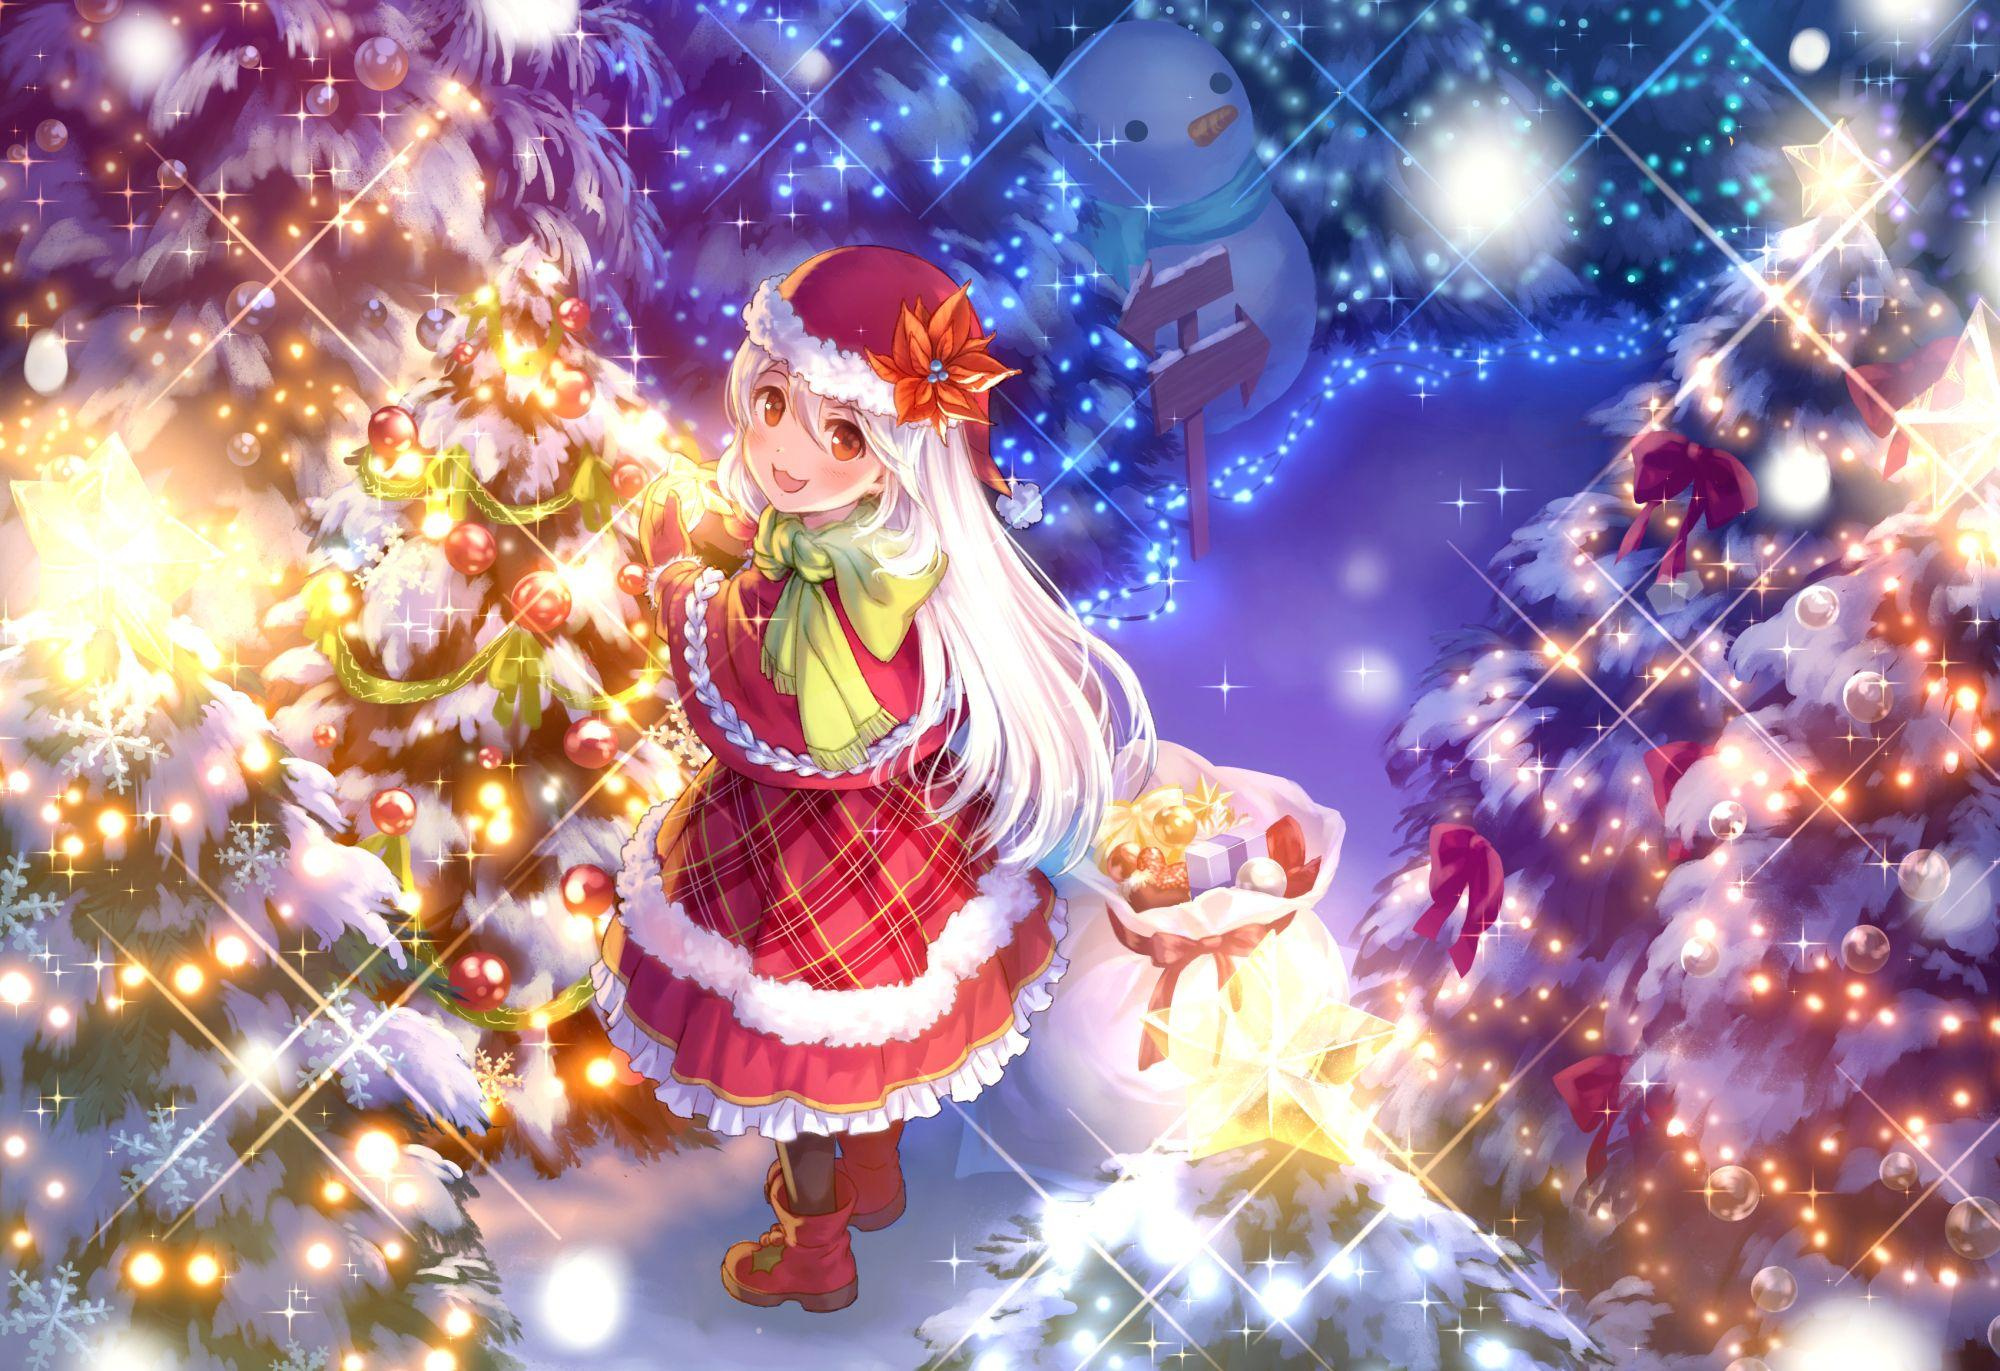 Anime Christmas Ornaments Wallpapers - Wallpaper Cave